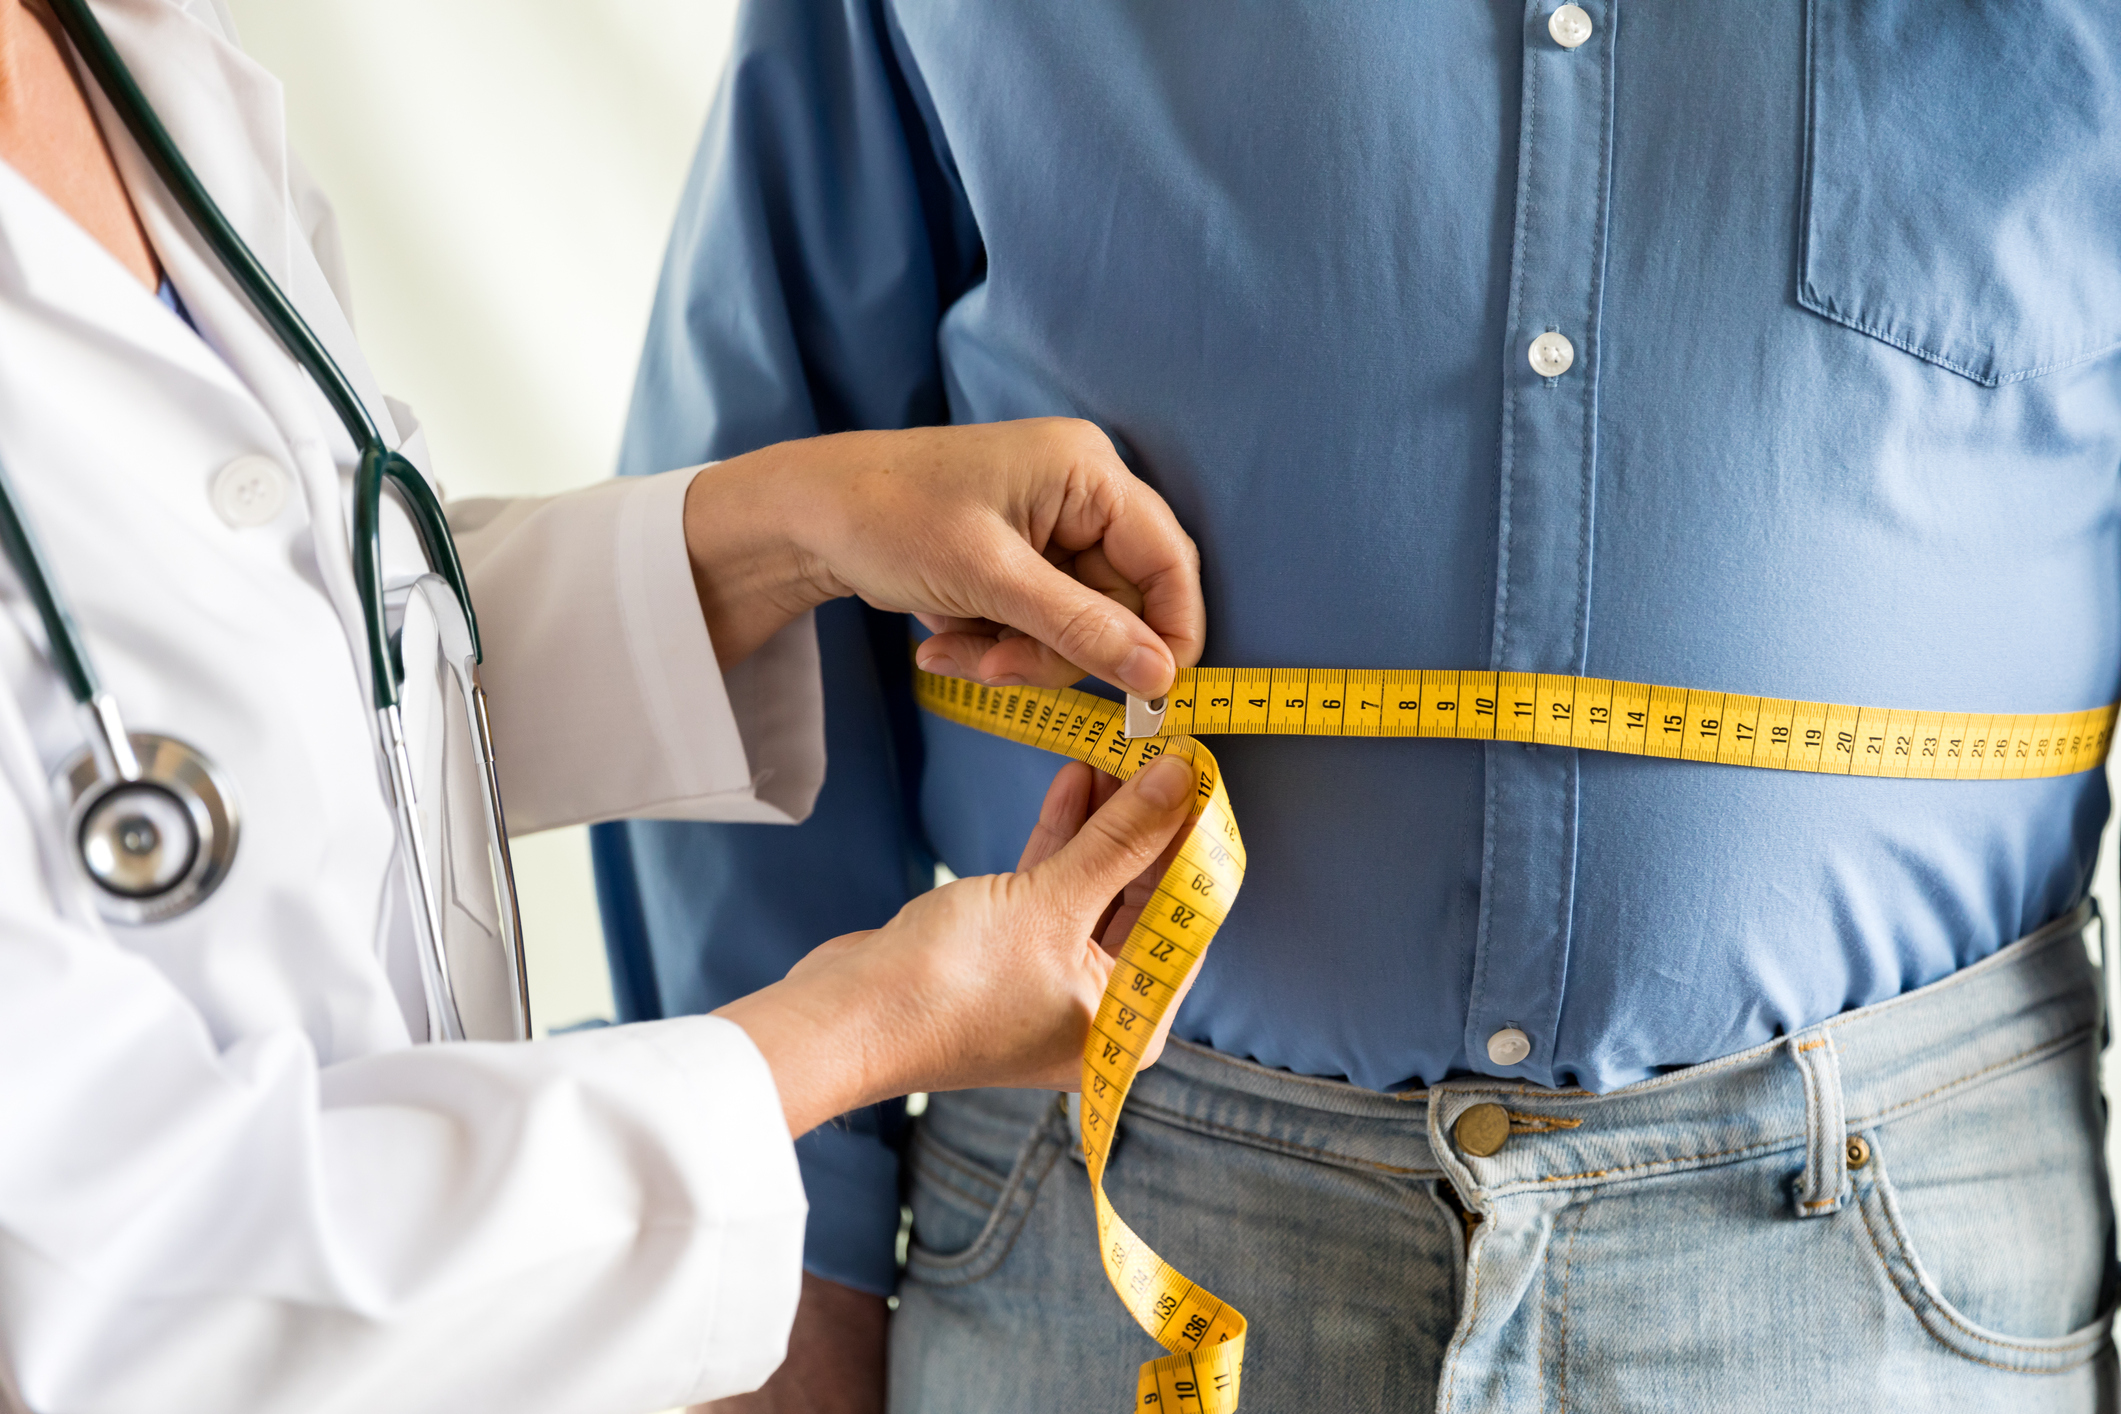 Concise guide about bariatric surgery